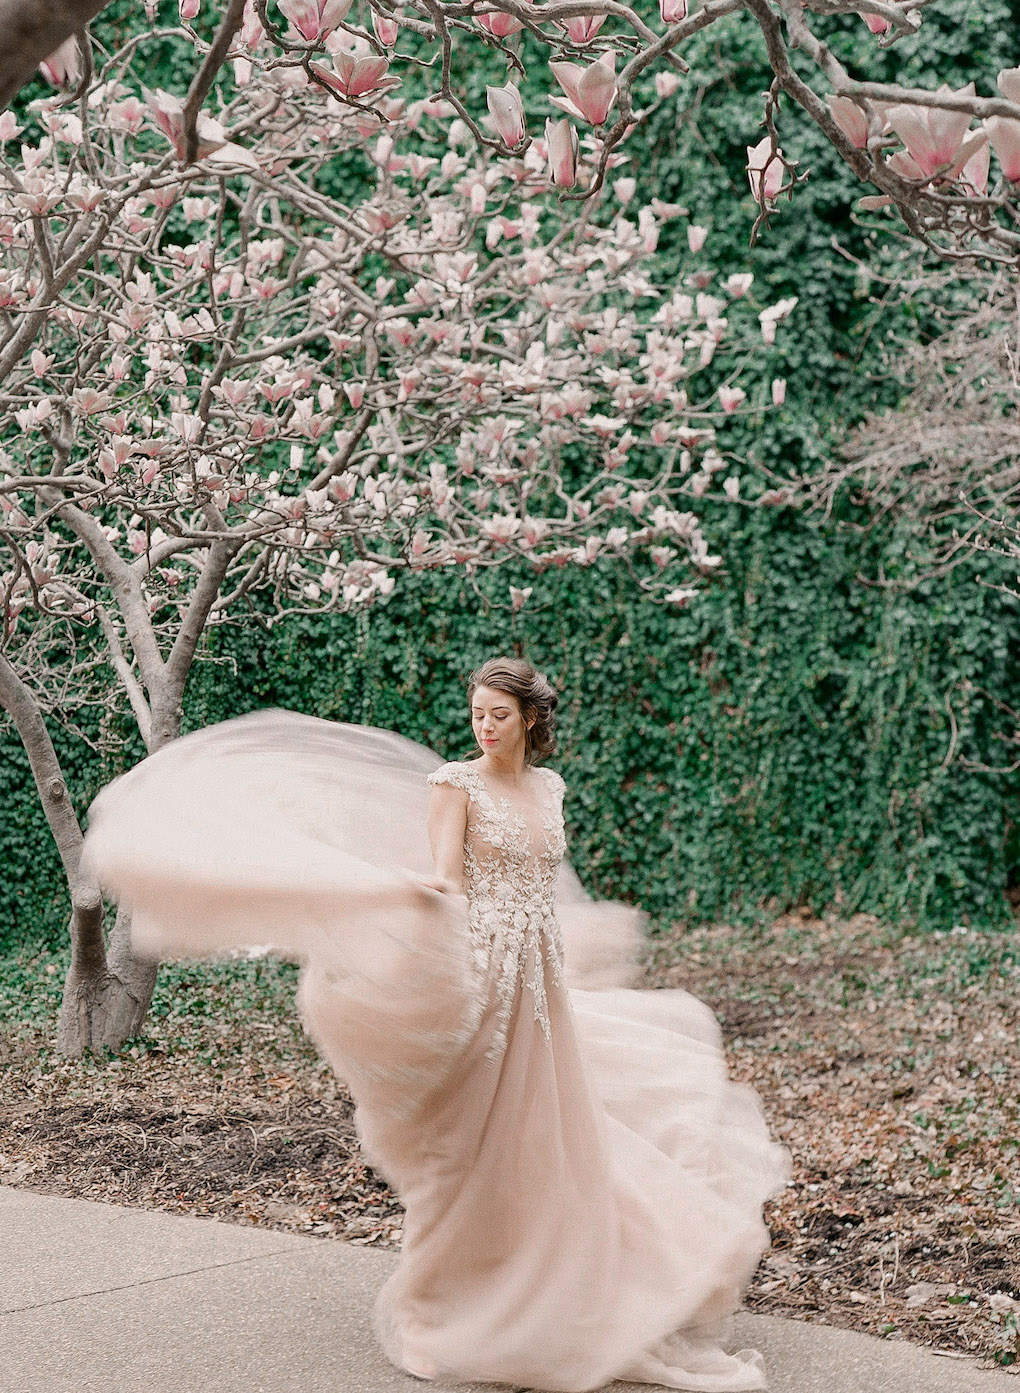 How to photograph your wedding dress: Soft and Subtle Palettes of Spring Blossoms | Editorial Shoot at The Renaissance Pittsburgh by Exhale Events. See more inspiration at exhale-events.com!